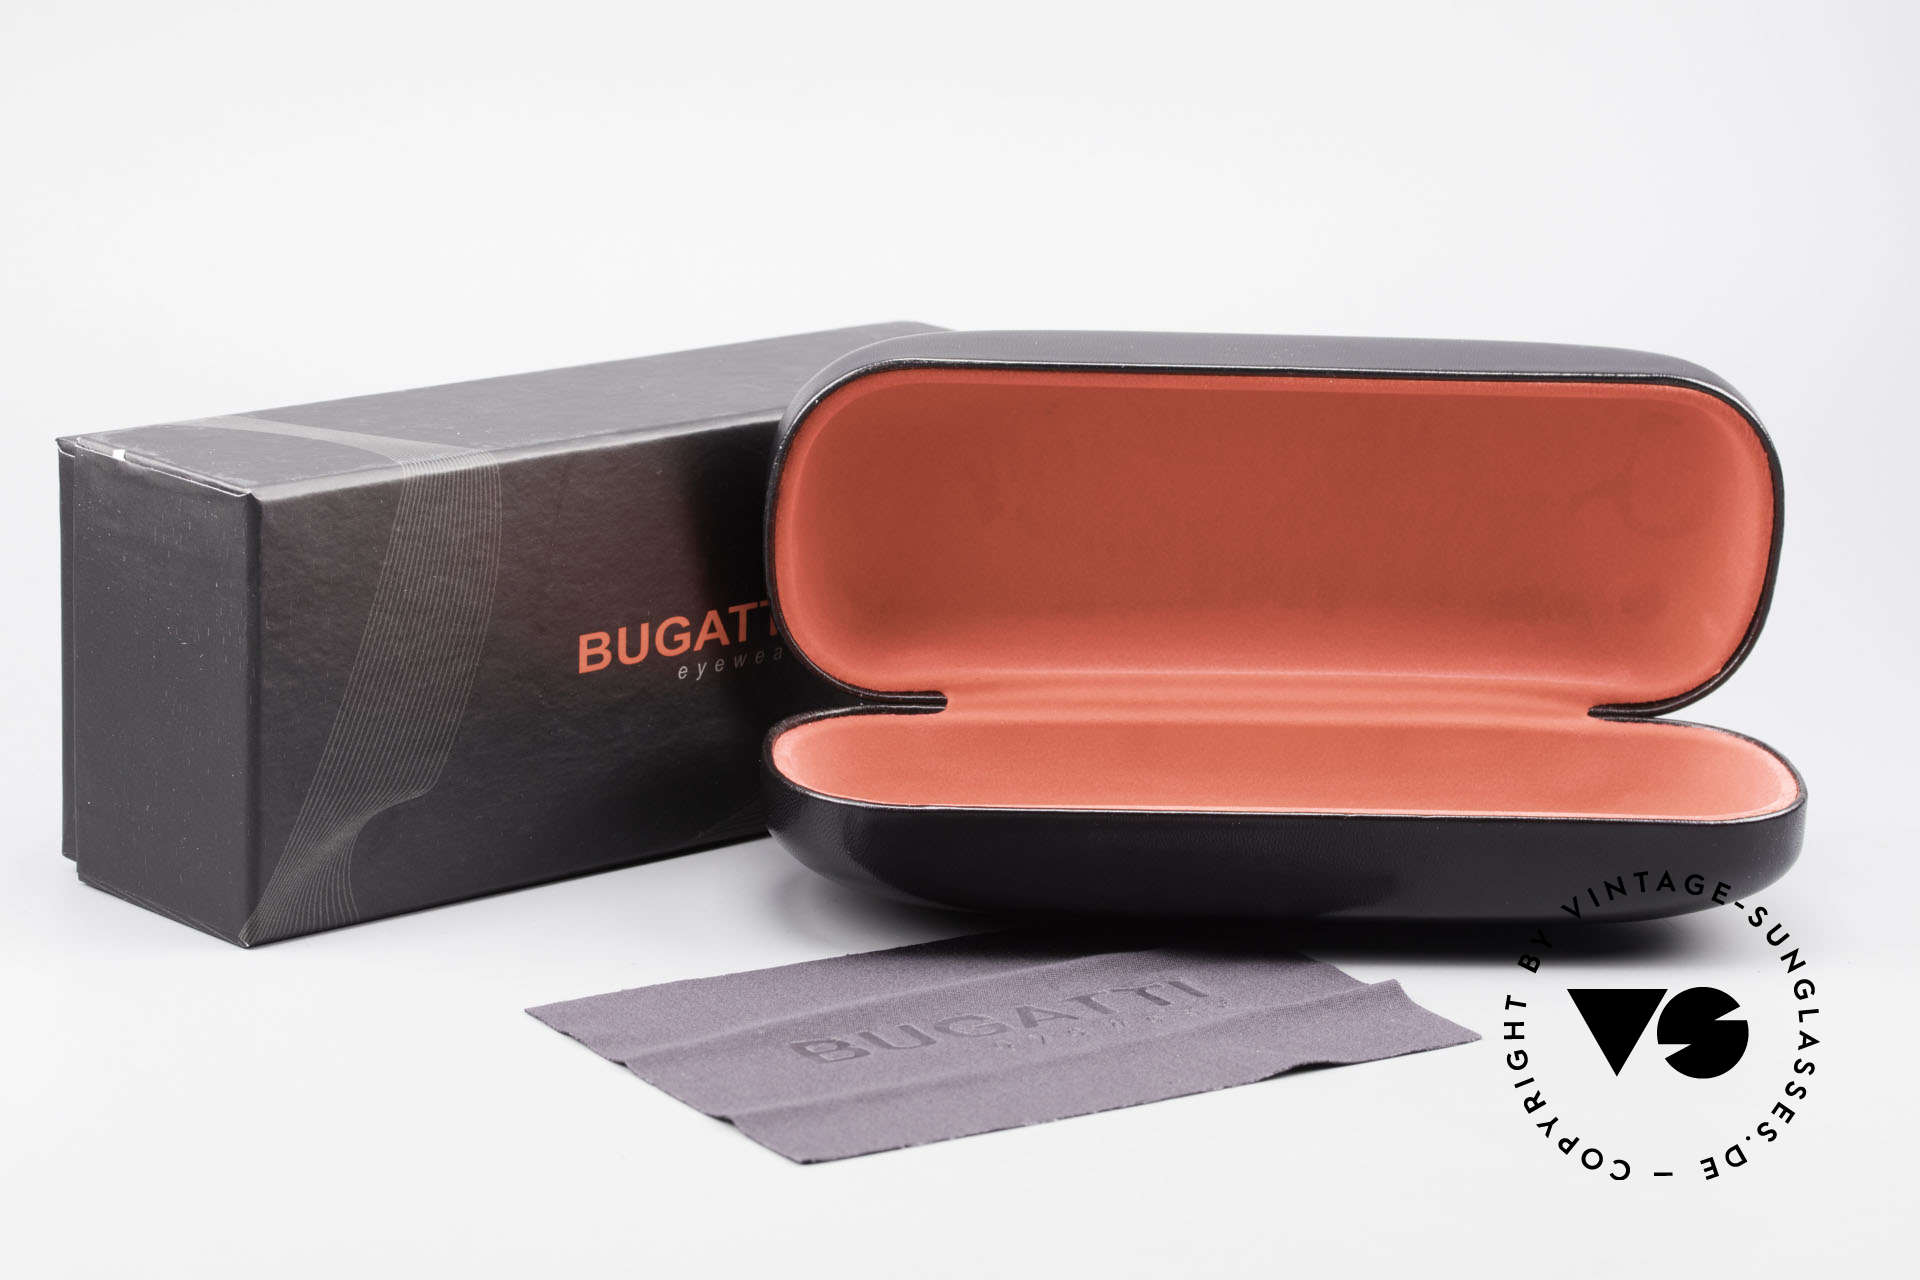 Bugatti 470 Limited Designer Eyeglasses, Size: medium, Made for Men